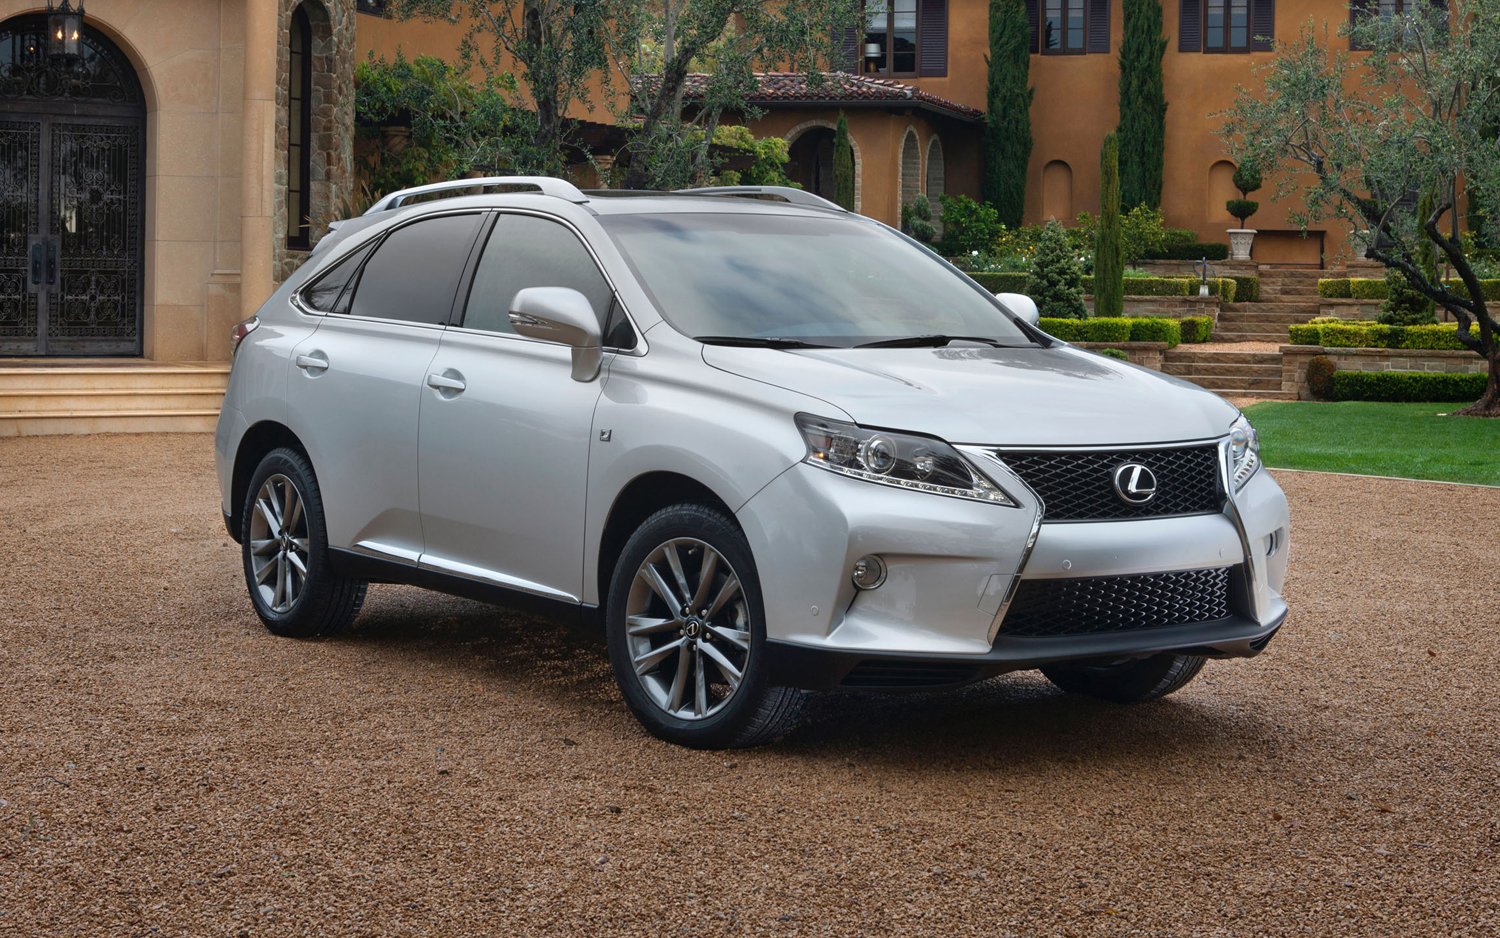 https://enthusiastnetwork.s3.amazonaws.com/uploads/sites/5/2012/07/2013-Lexus-RX-350-F-Sport-front-three-quarter-close-up.jpg?impolicy=entryimage